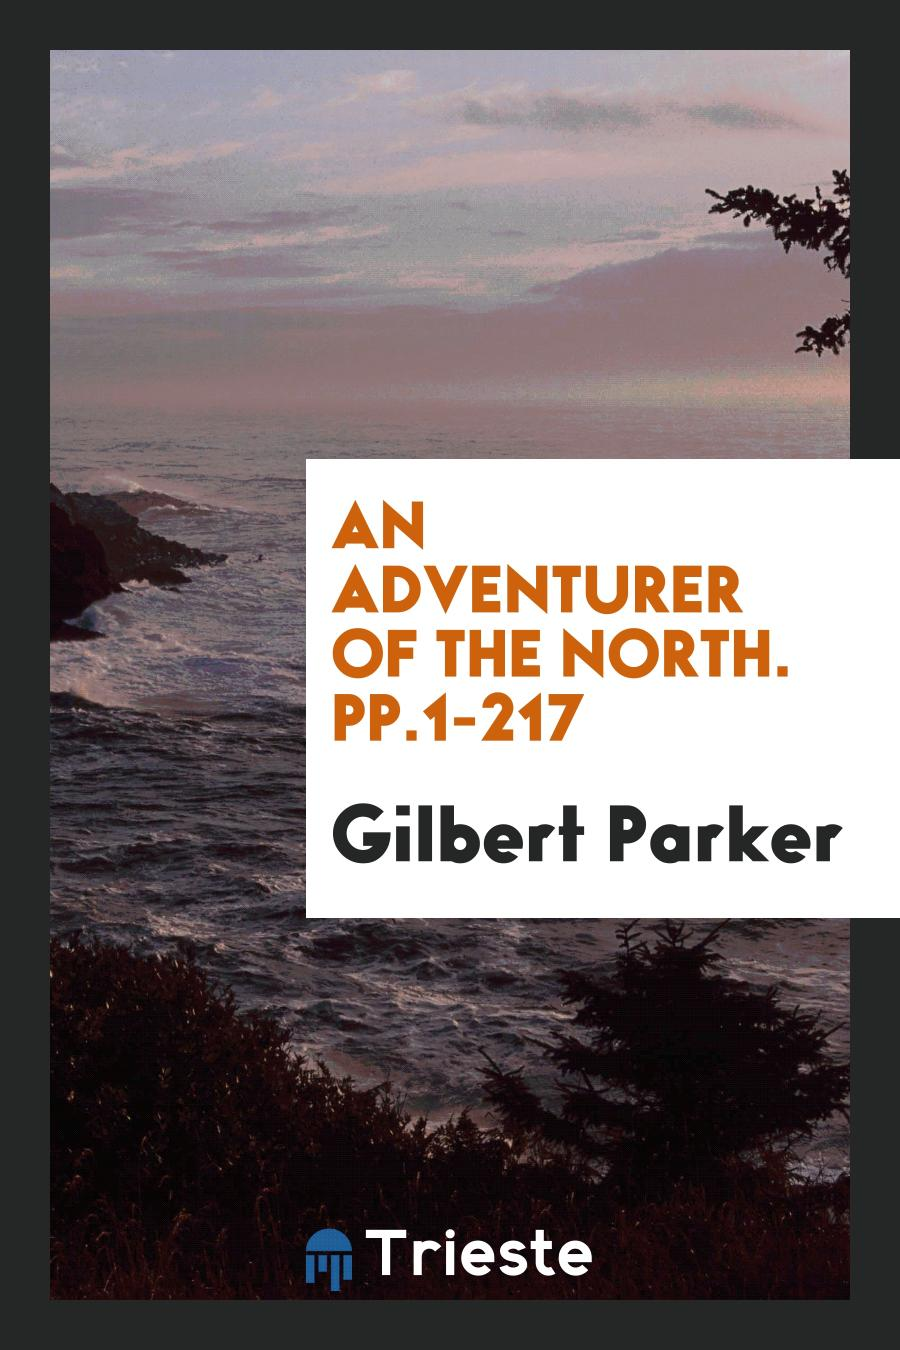 An Adventurer of the North. pp.1-217